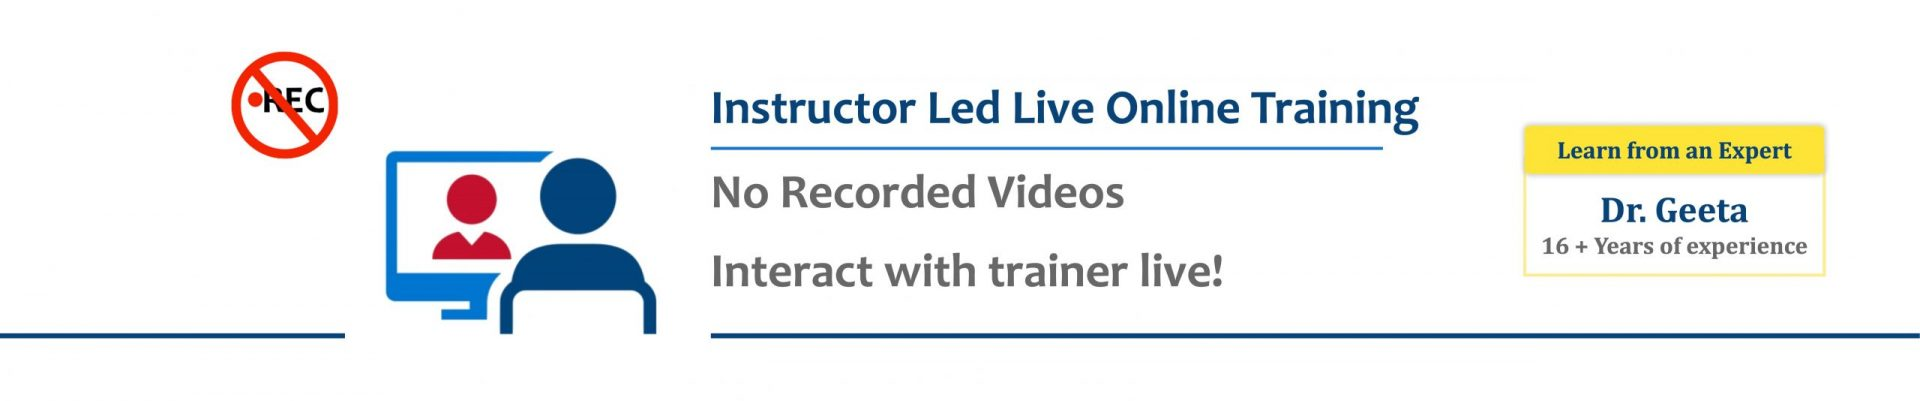 Instructor Led Live Online Training. No Recorded Videos.